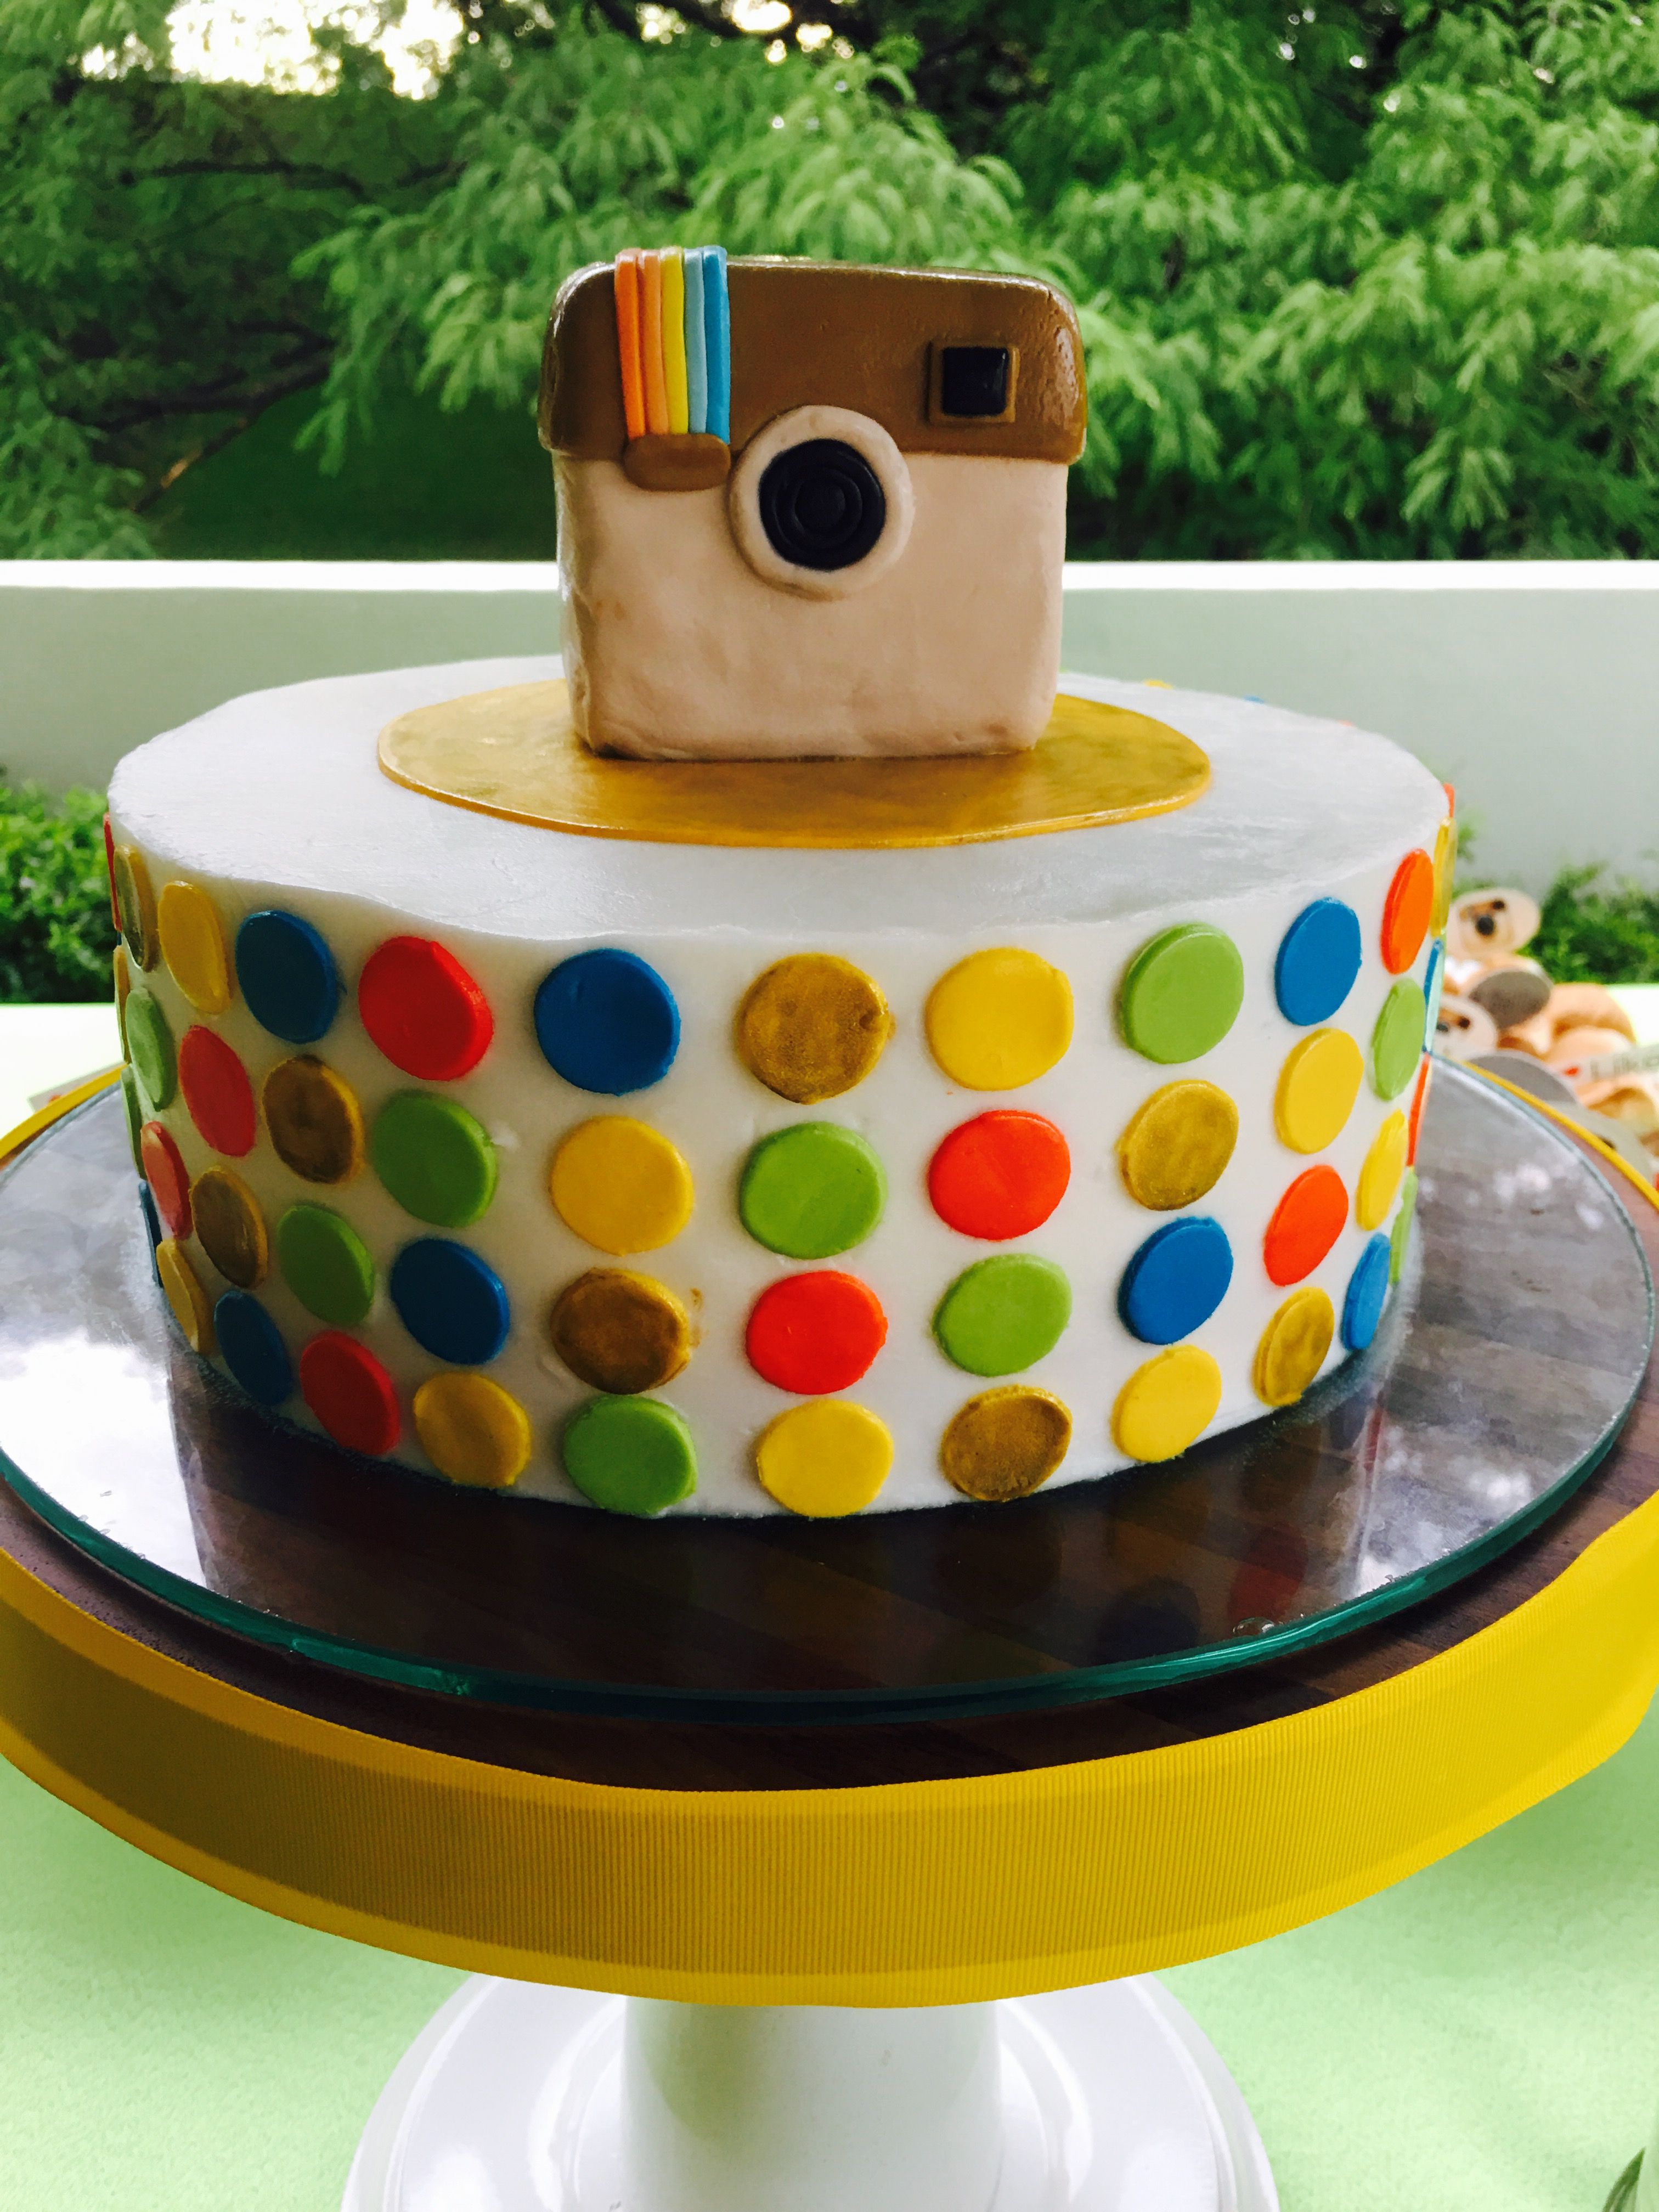 Teen Birthday Cake Instagram Cake Instagram Party Social Media Ideas Teens